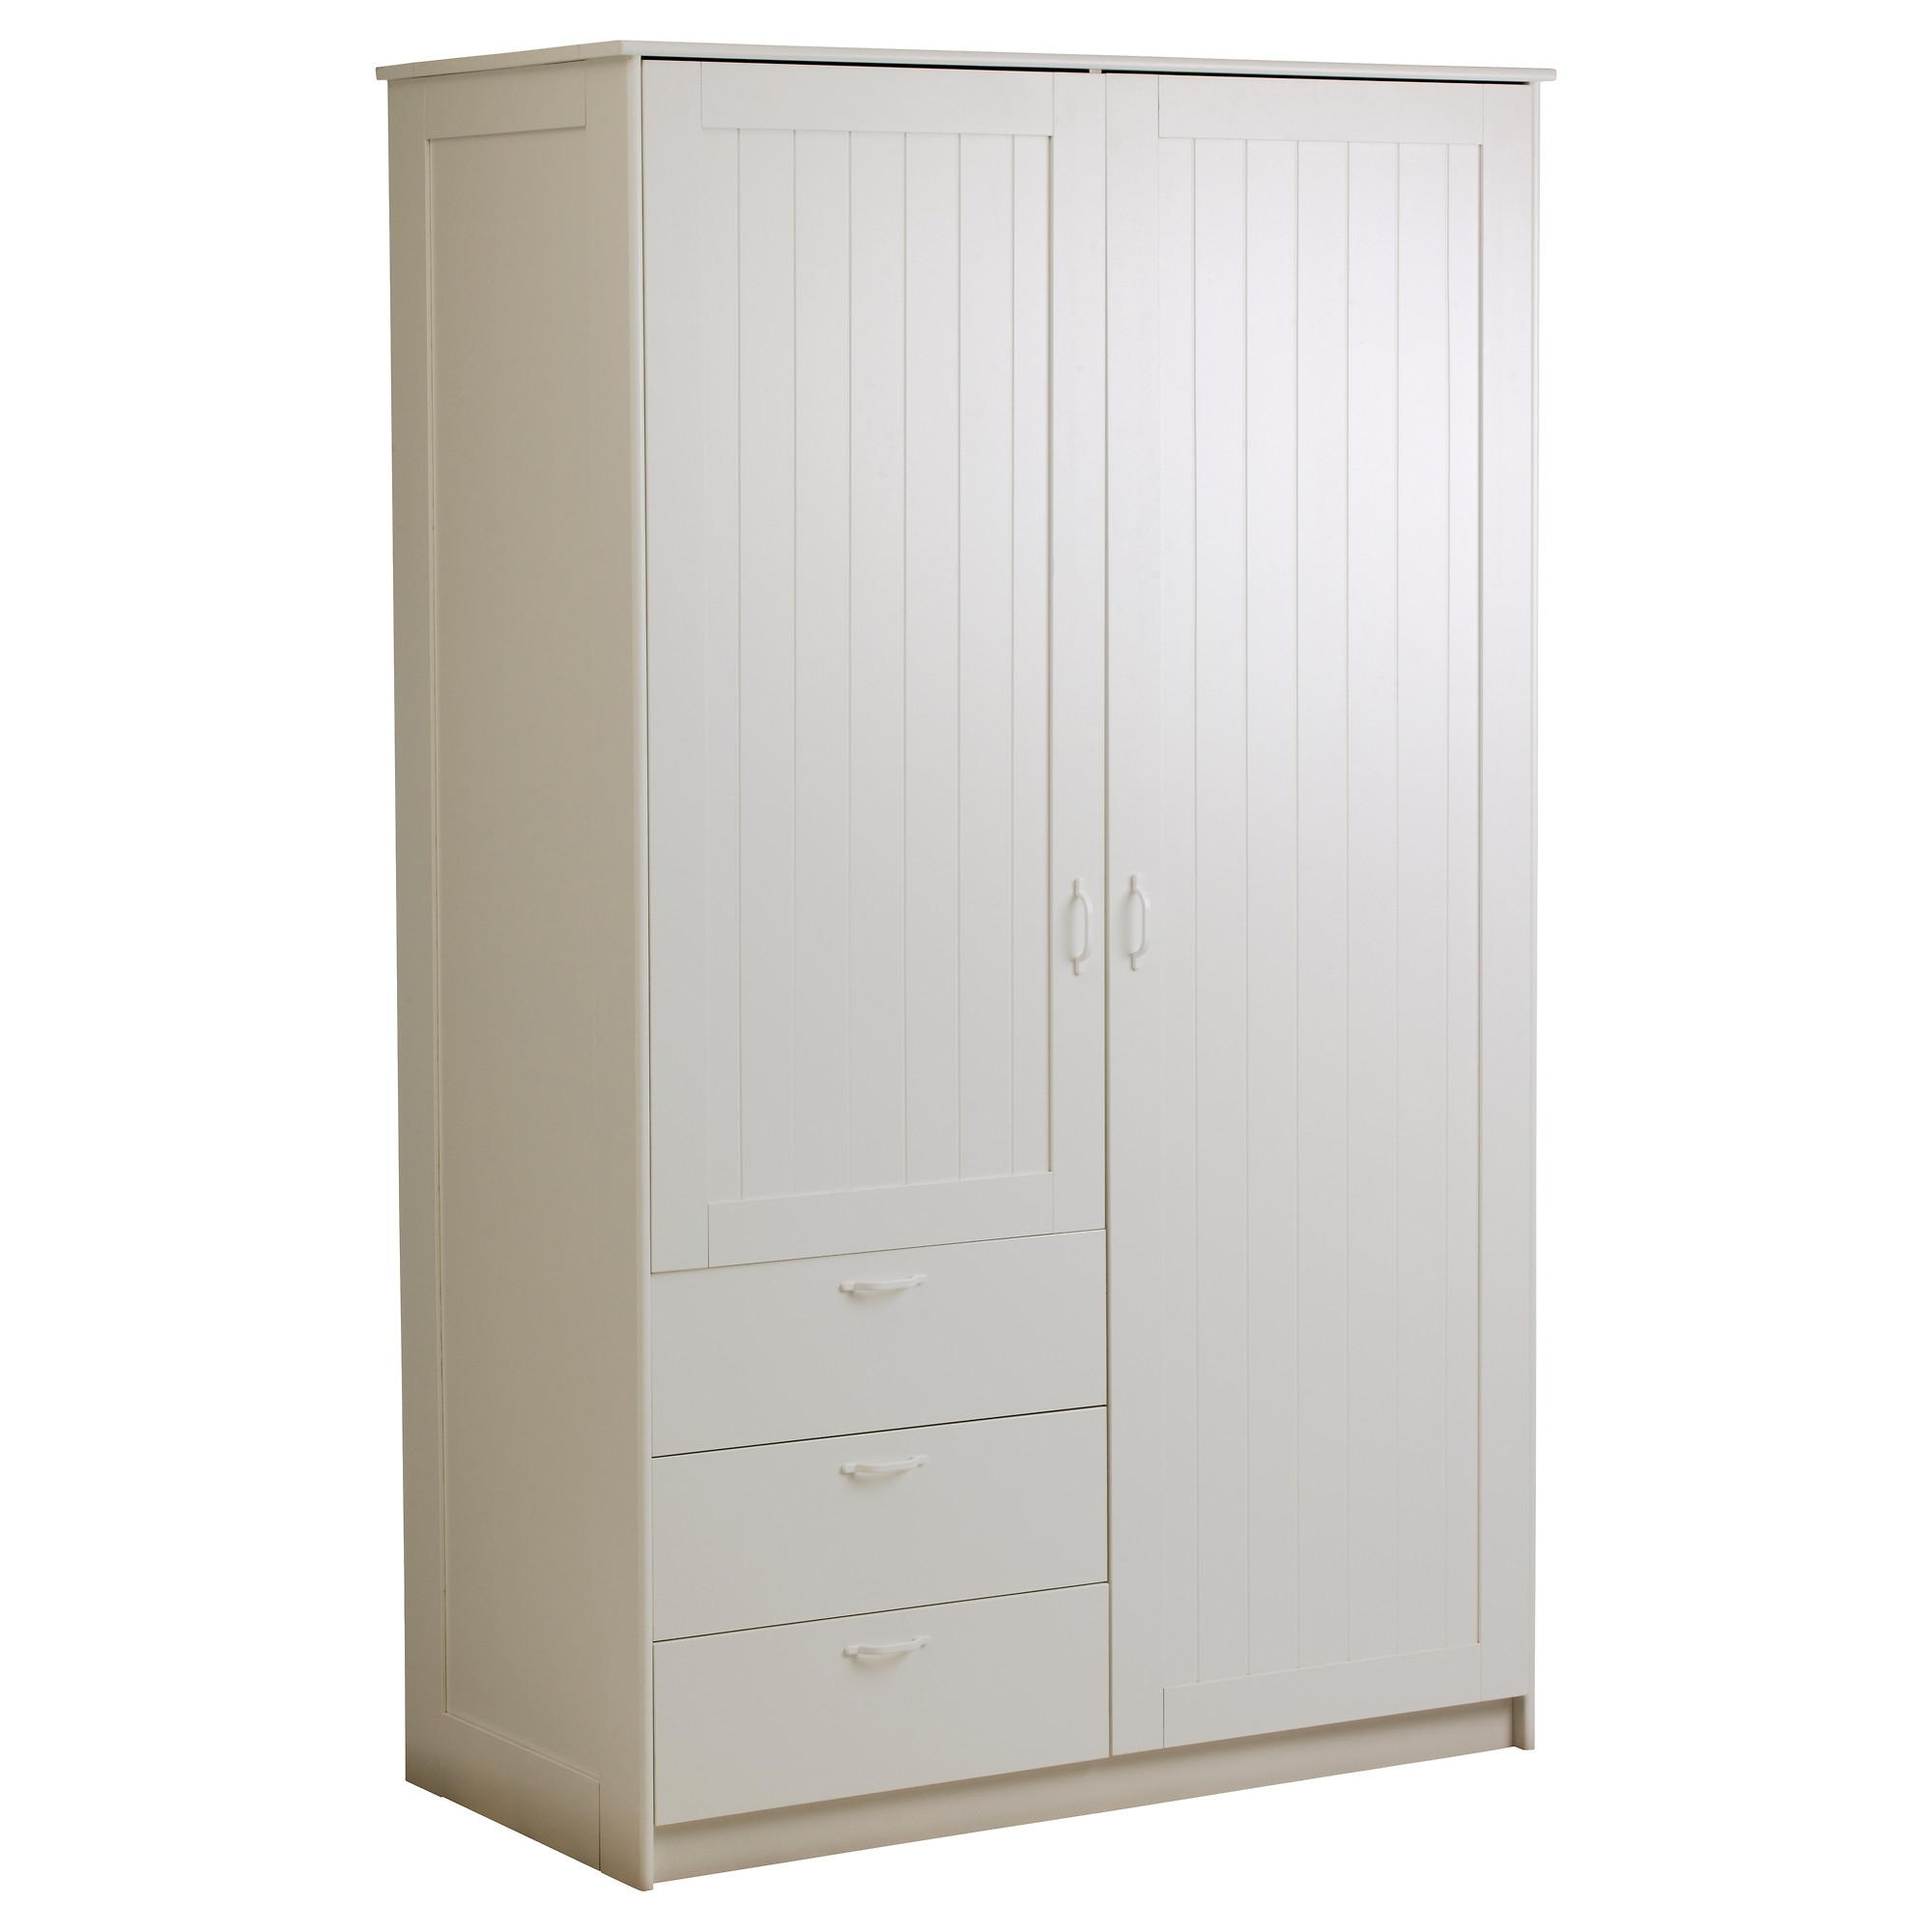 15 collection of white cheap wardrobes. Black Bedroom Furniture Sets. Home Design Ideas